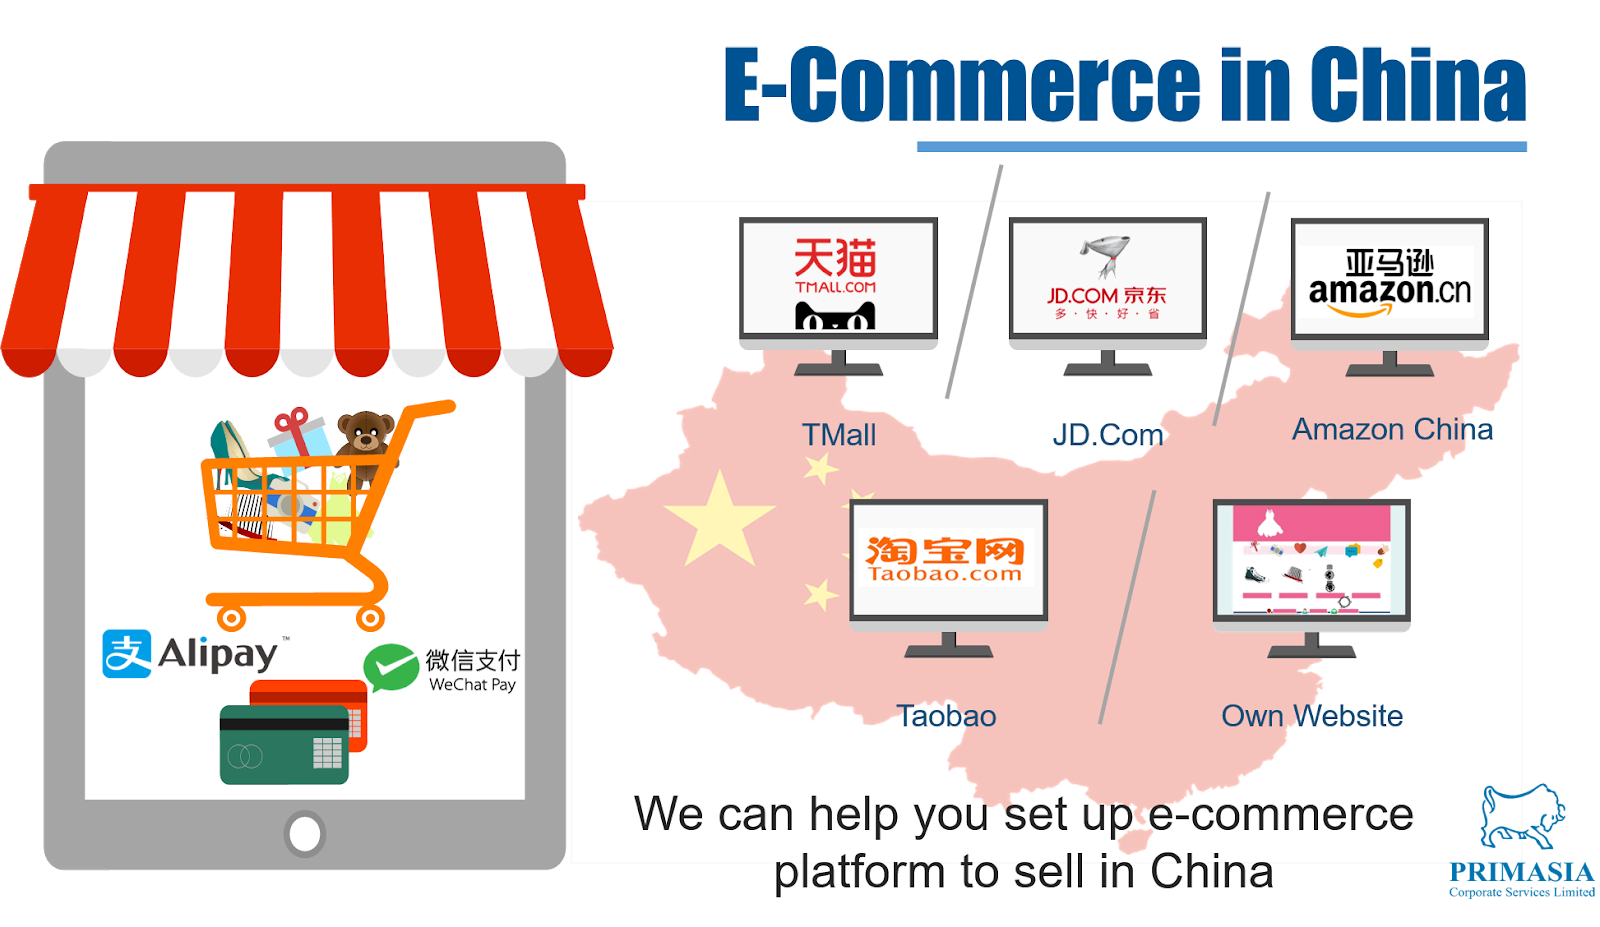 Primasia Corporate Services Limited: E-commerce In China